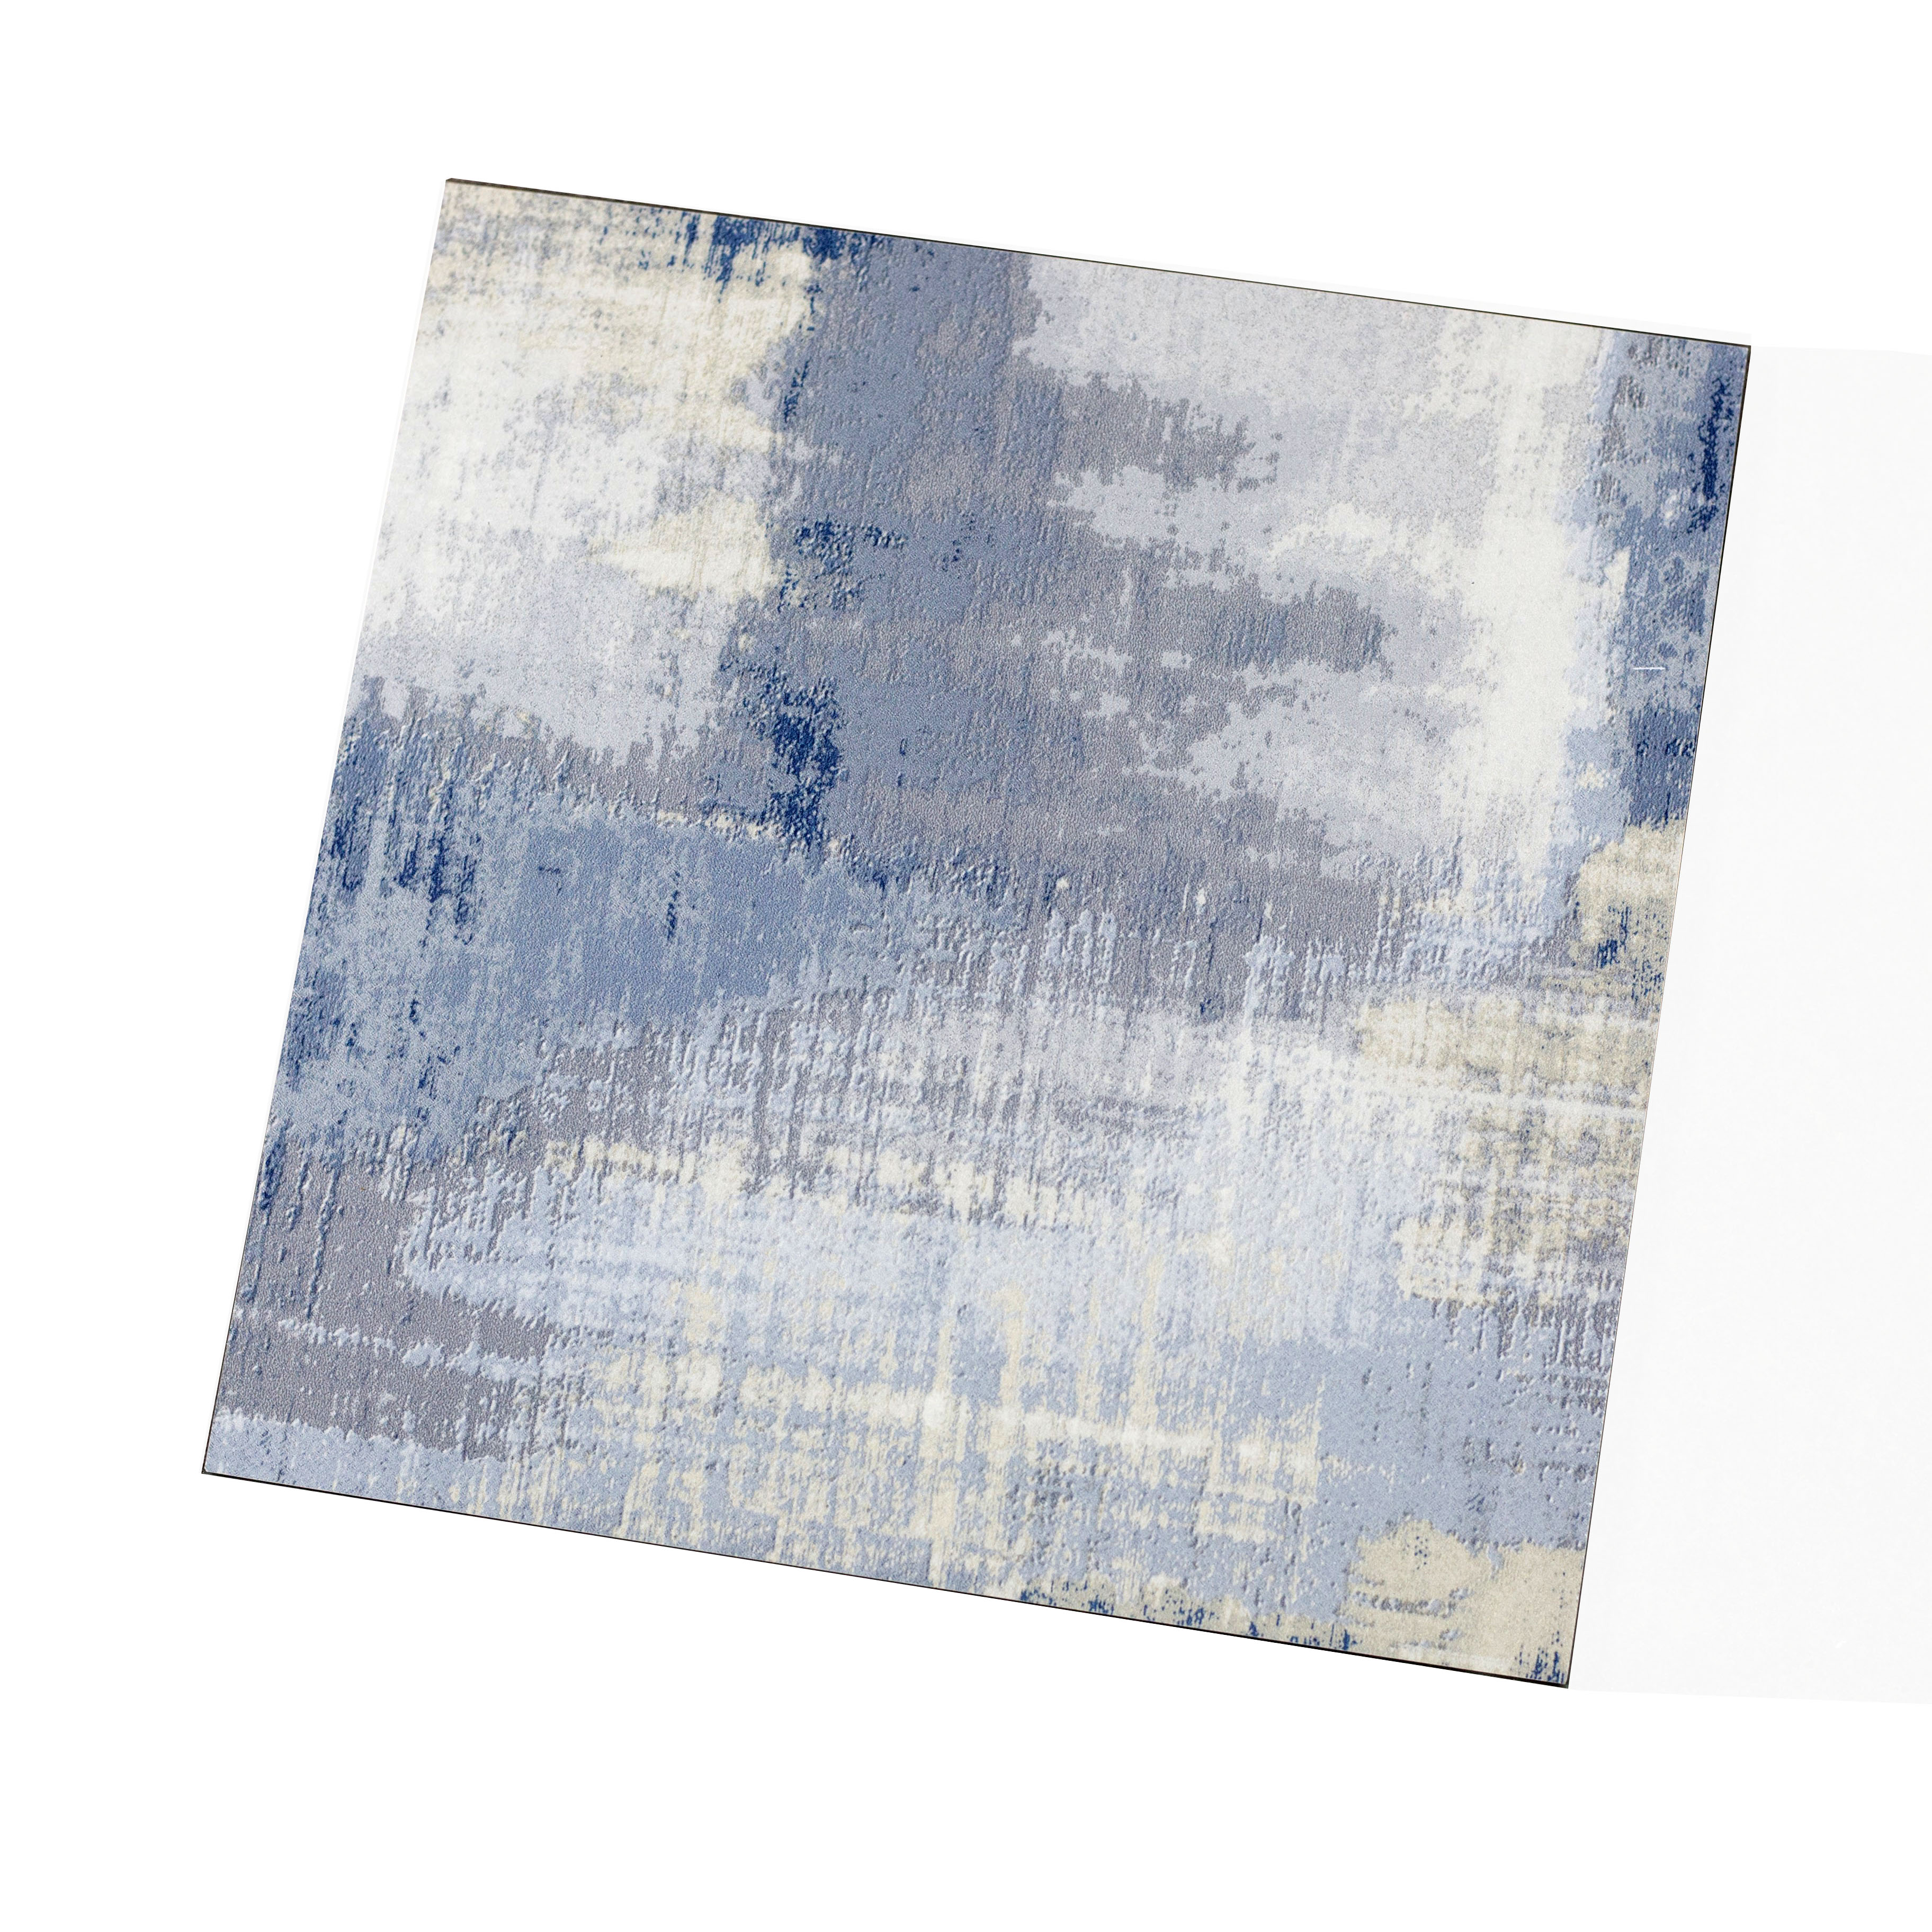 "Abolos- Nature 8"" x 8"" Glass Subway Tile in Cement Blue/Gray (13.33sqft / 30pc Box)"